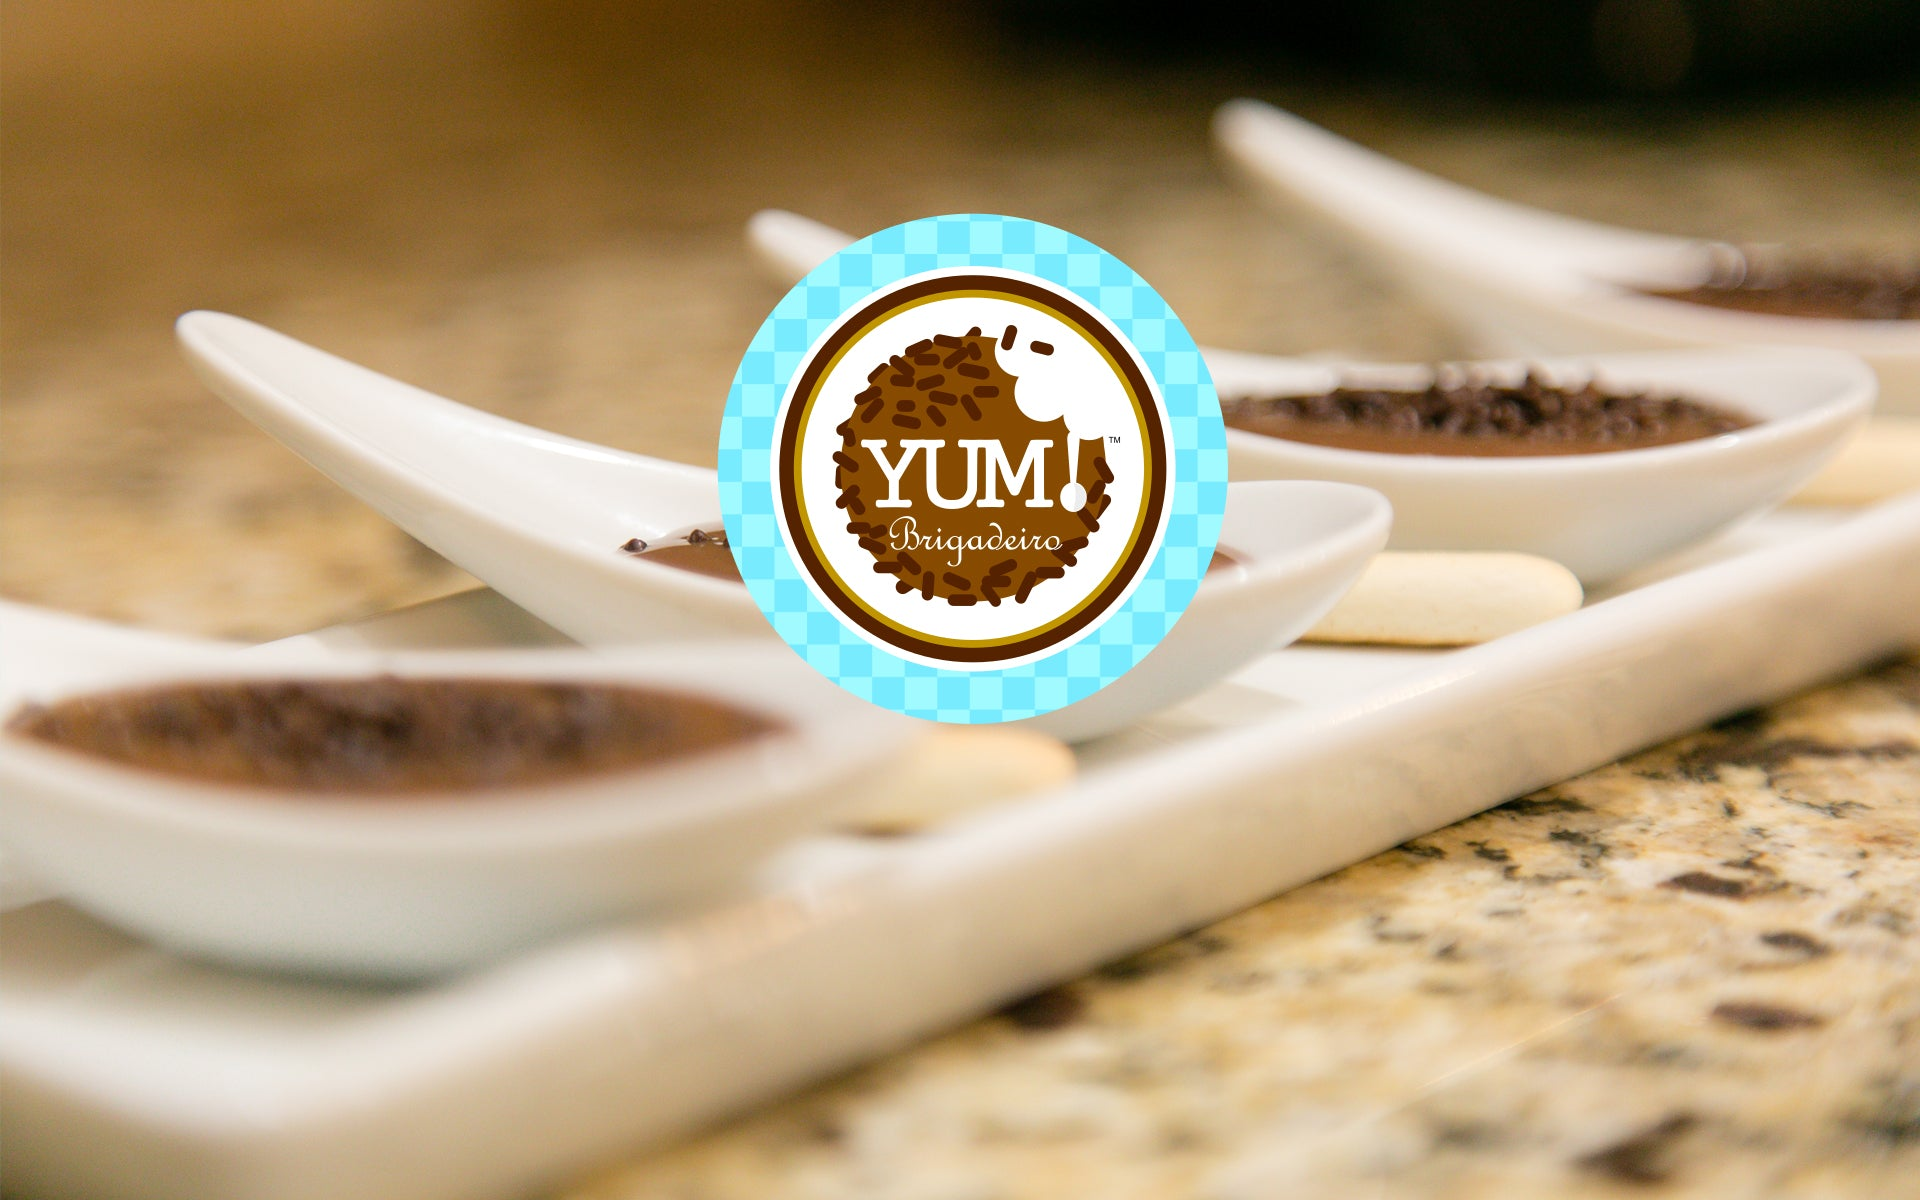 Yum Brigadeiro on a serving spoon and logo